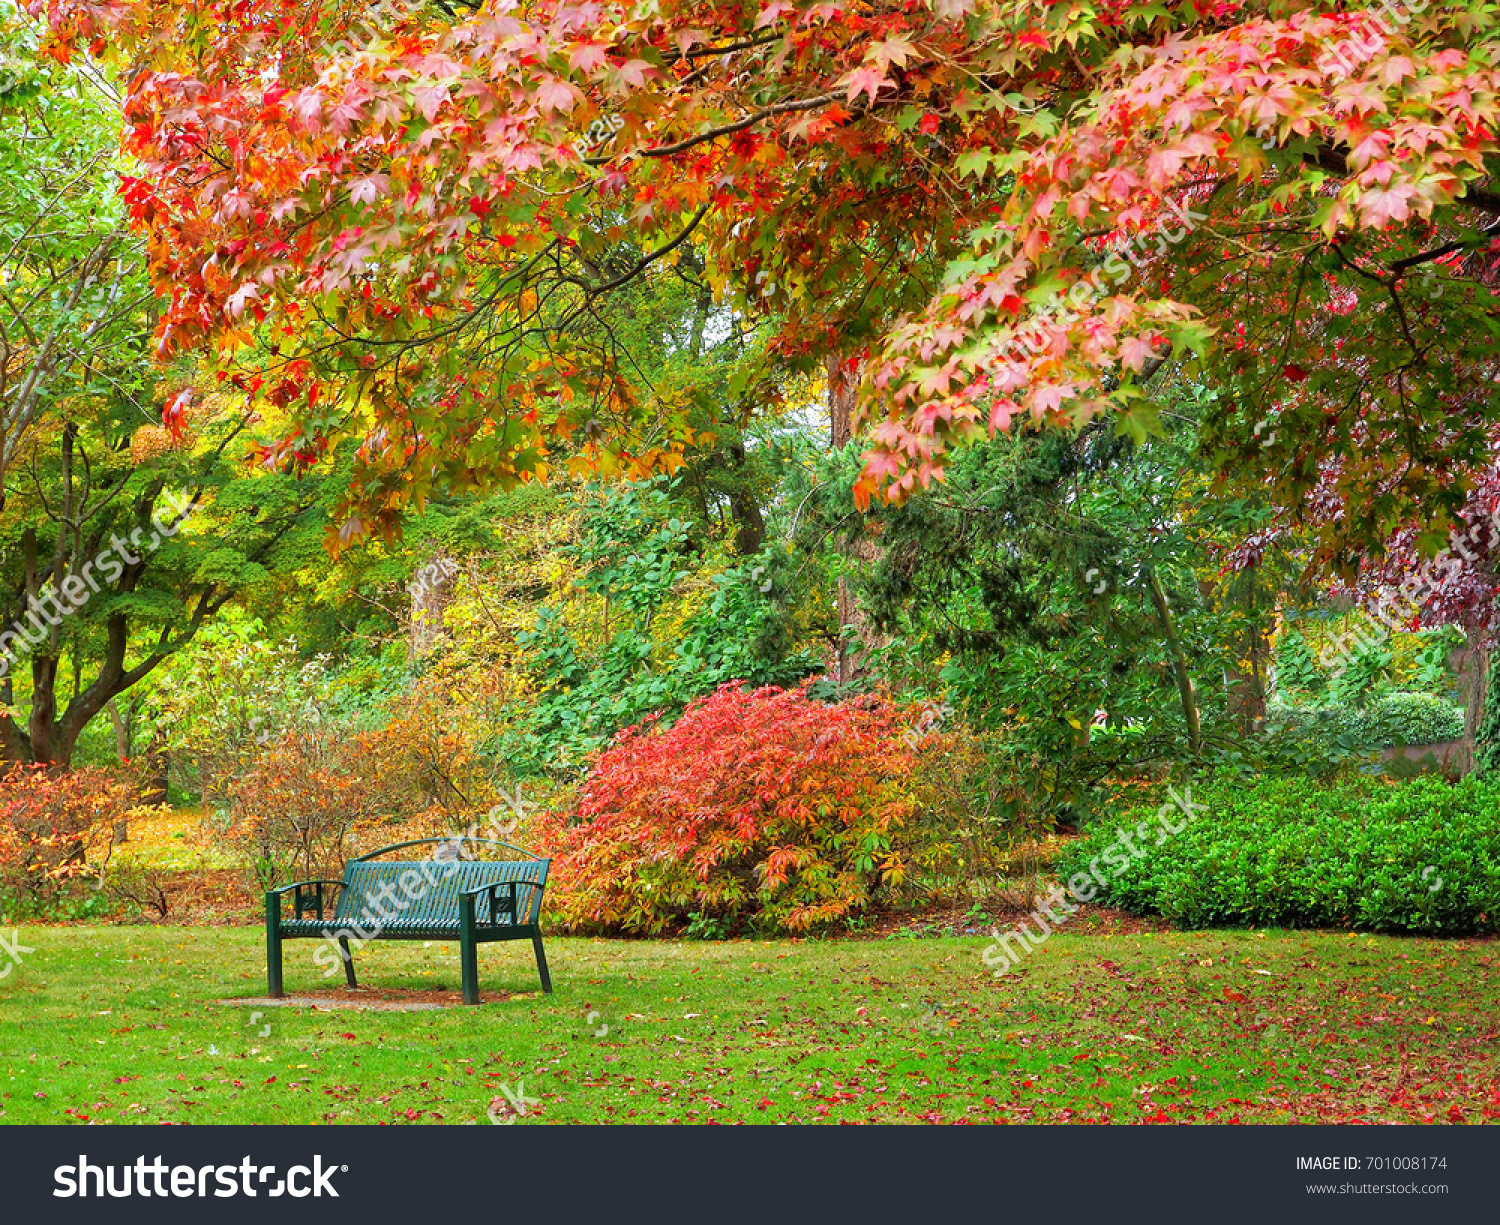 Autumn Colored Bright Leaves On Trees Stock Photo 701008174 ...